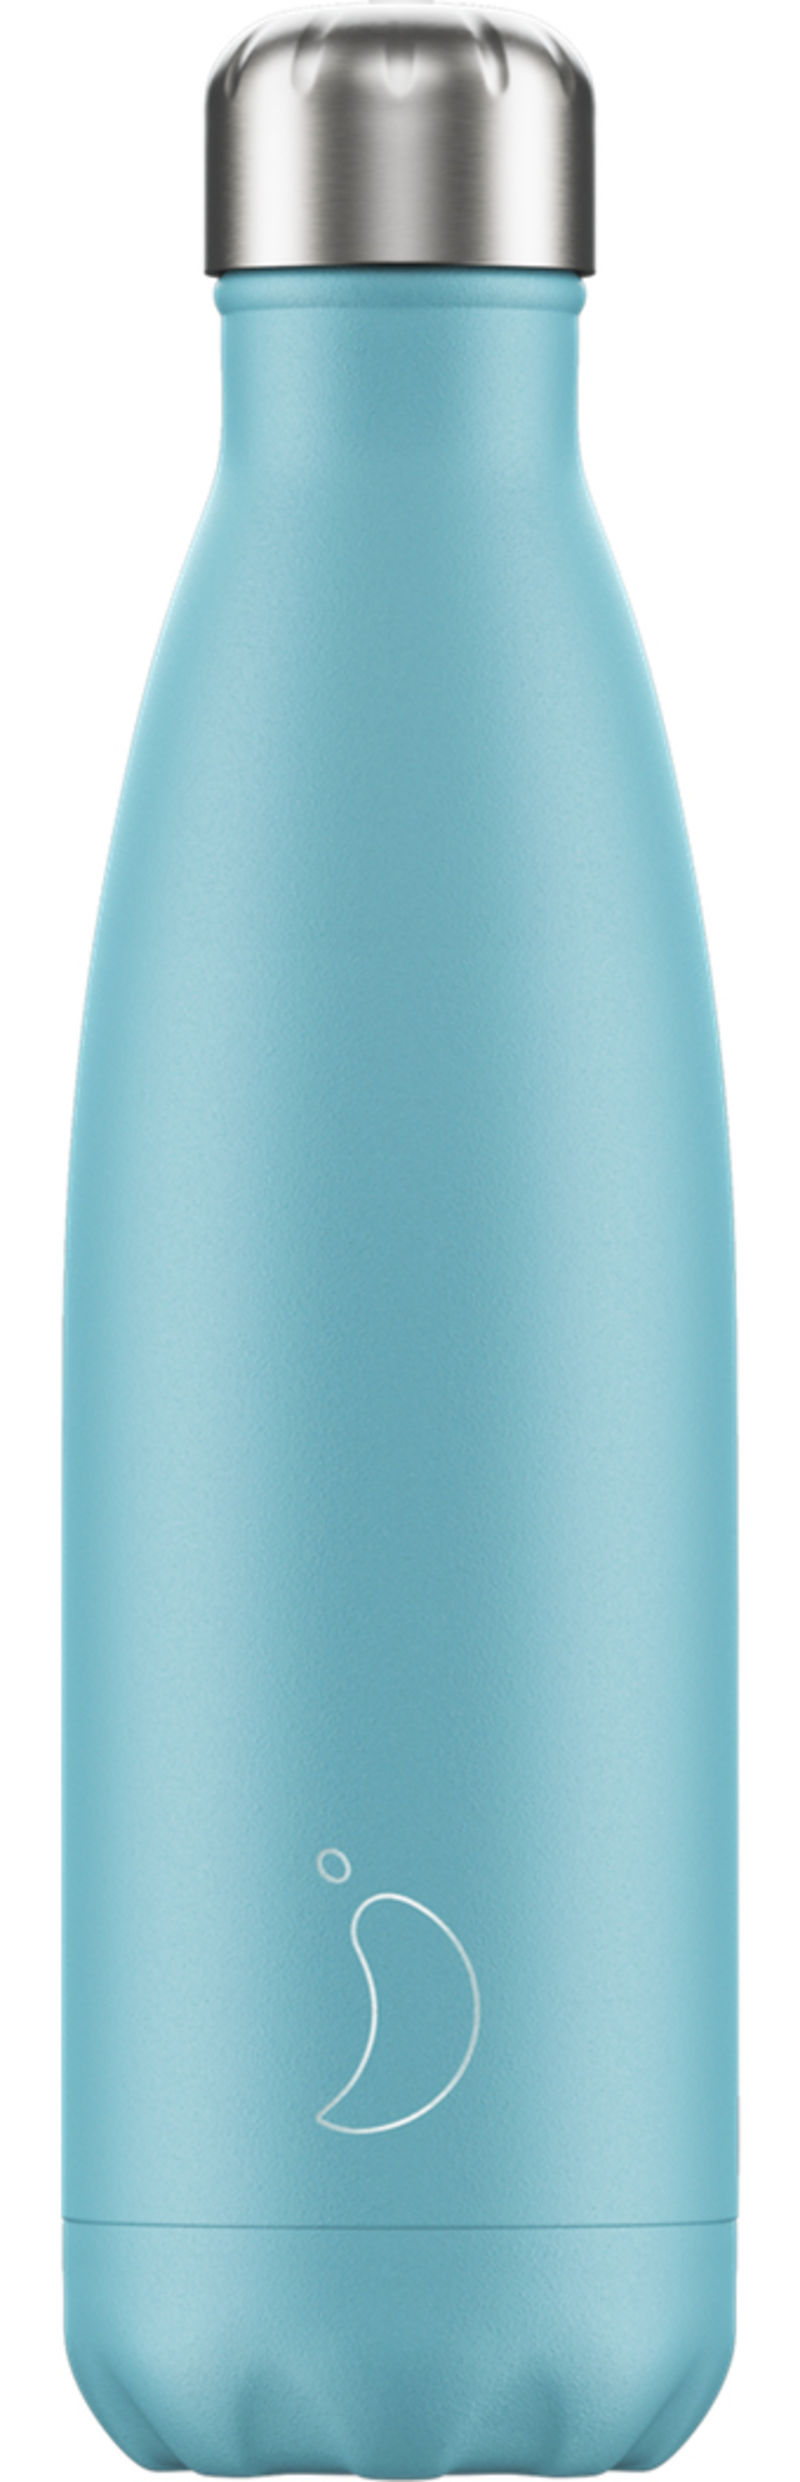 BOTELLA INOX AZUL PASTEL 750ml